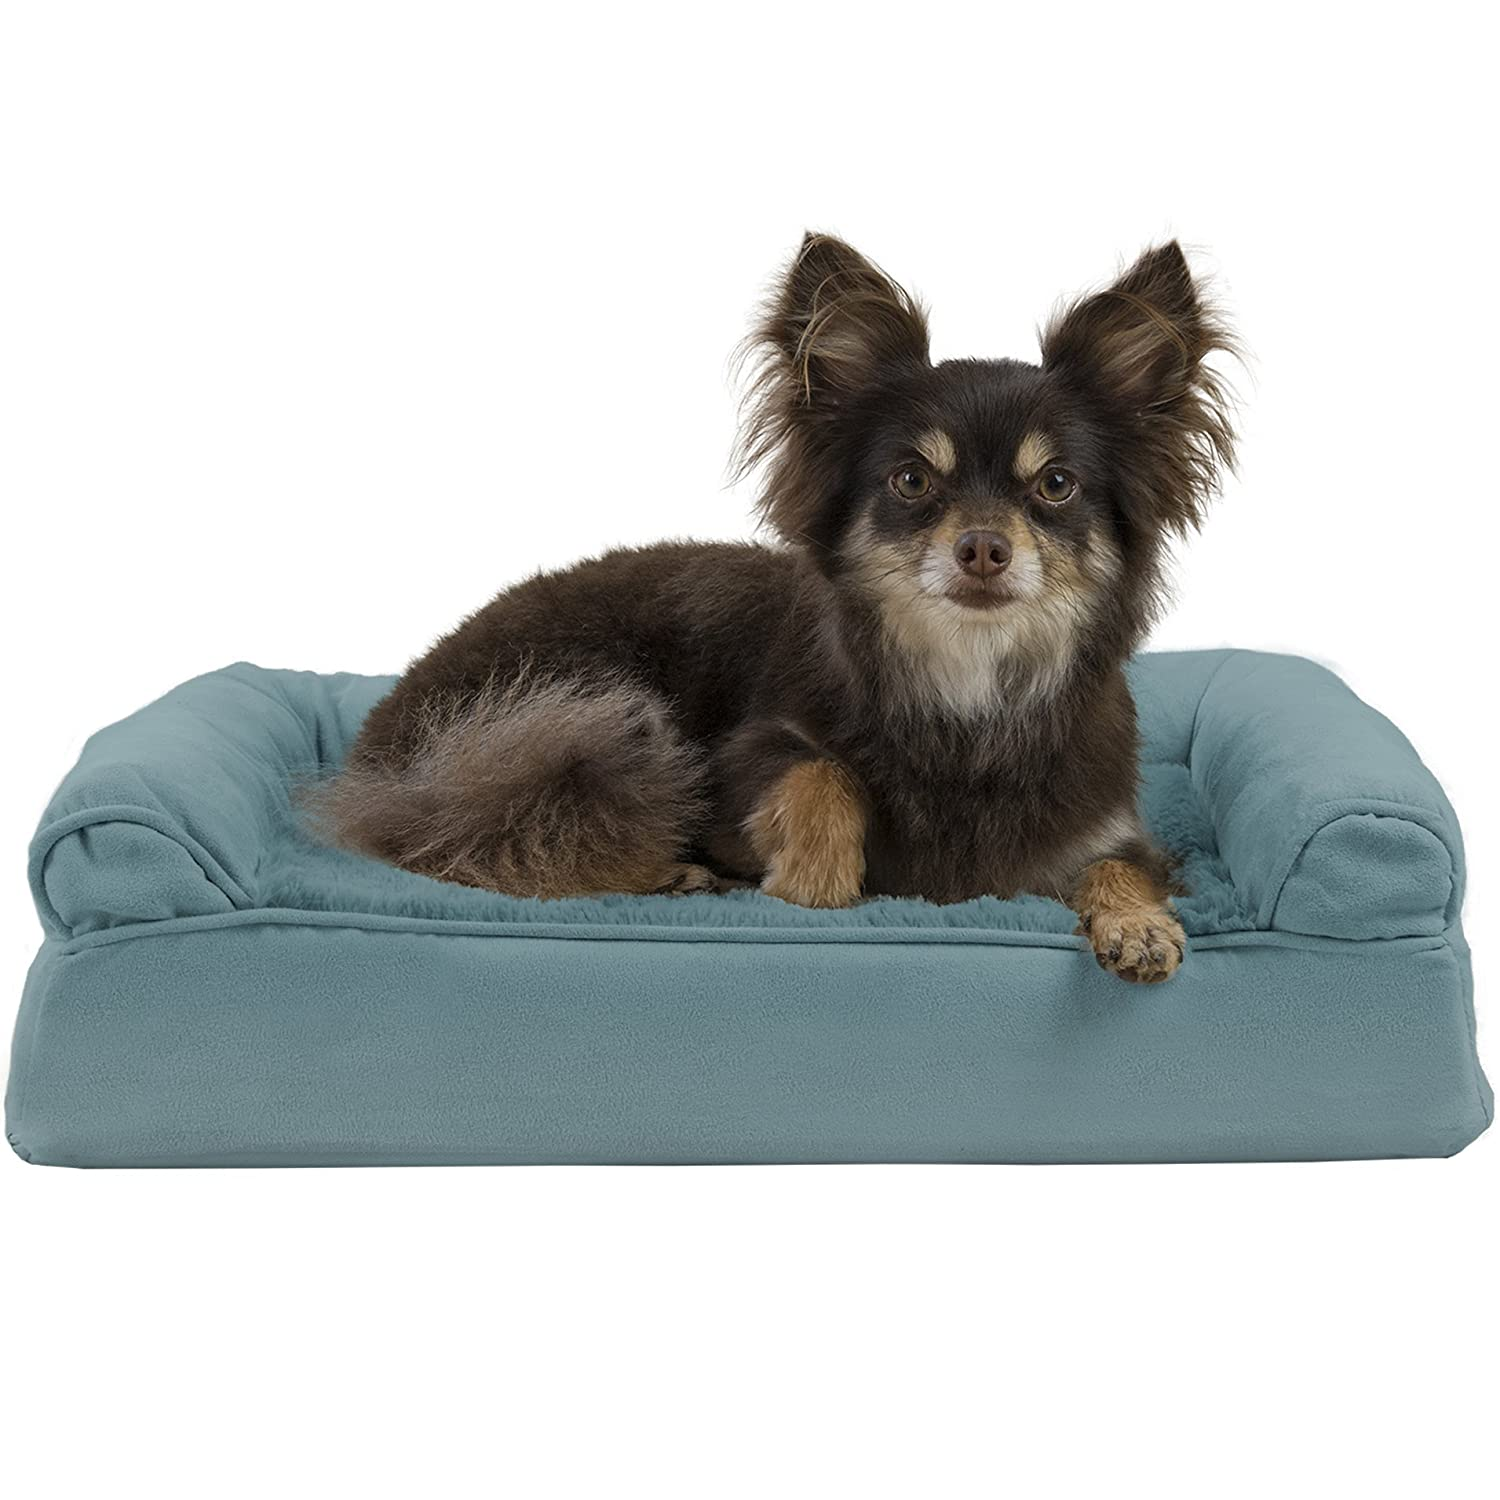 FurHaven Pet Dog Bed   Orthopedic Ultra Plush Sofa-Style Couch Pet Bed for Dogs & Cats, Deep Pool, Small